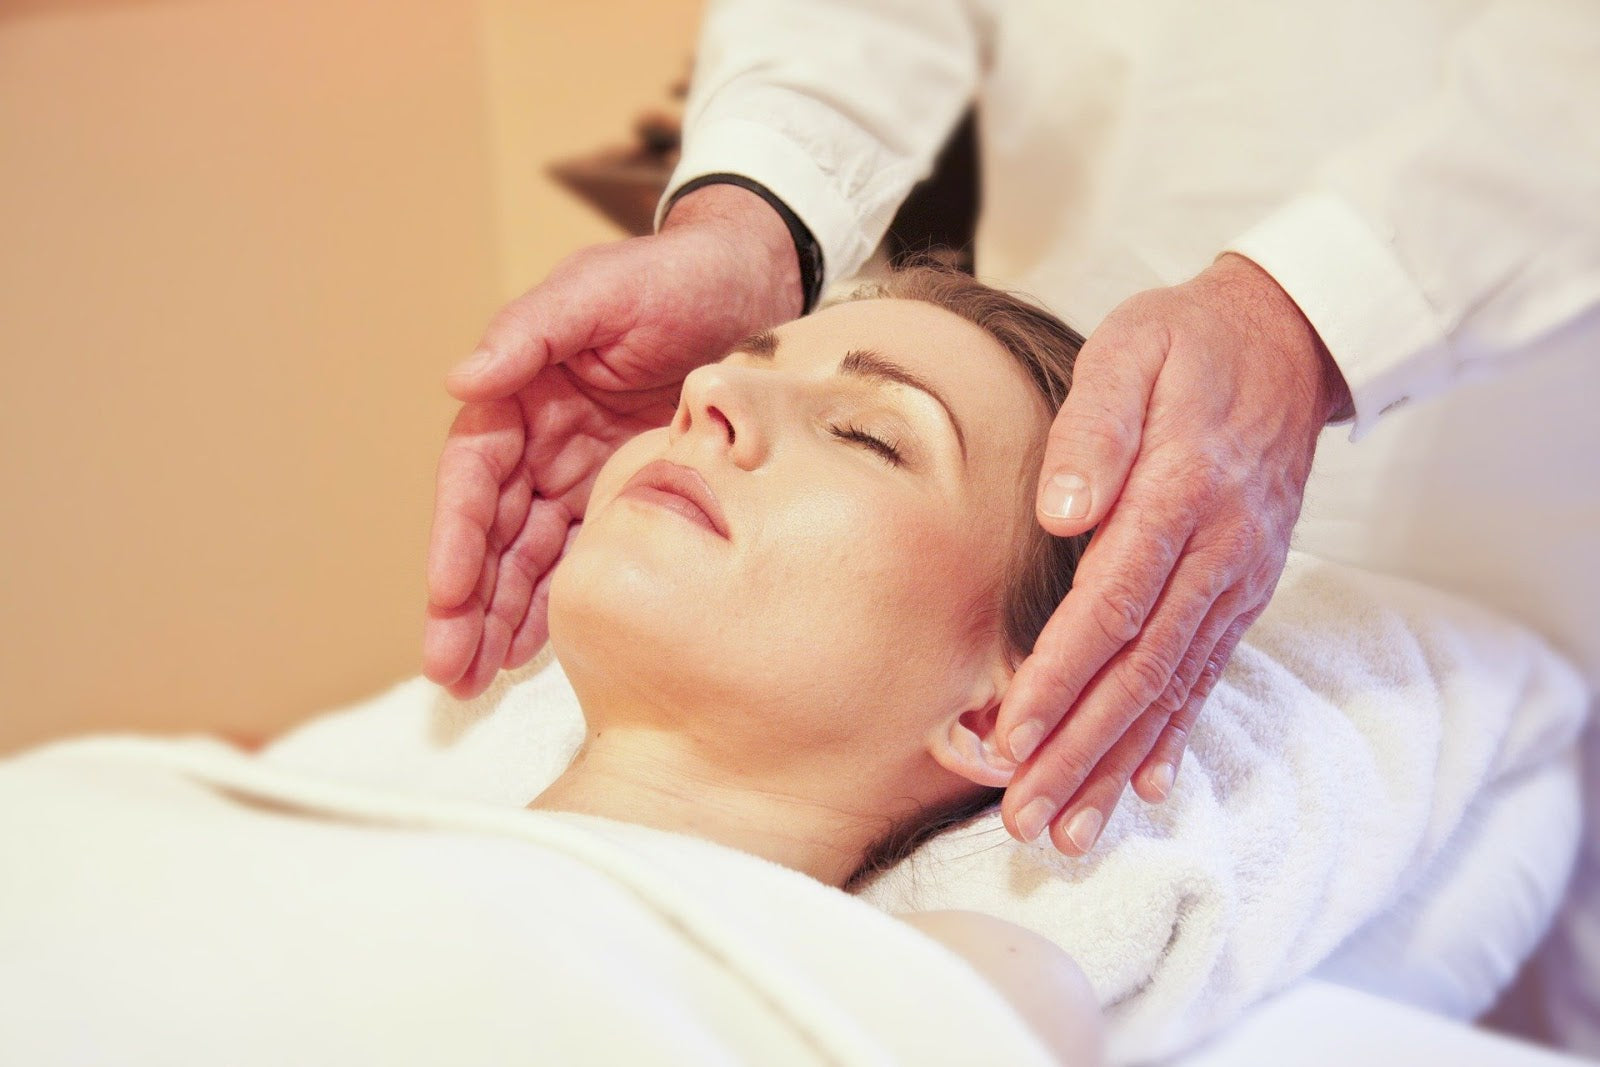 How to get rid of bloating: A woman relaxes before a massage